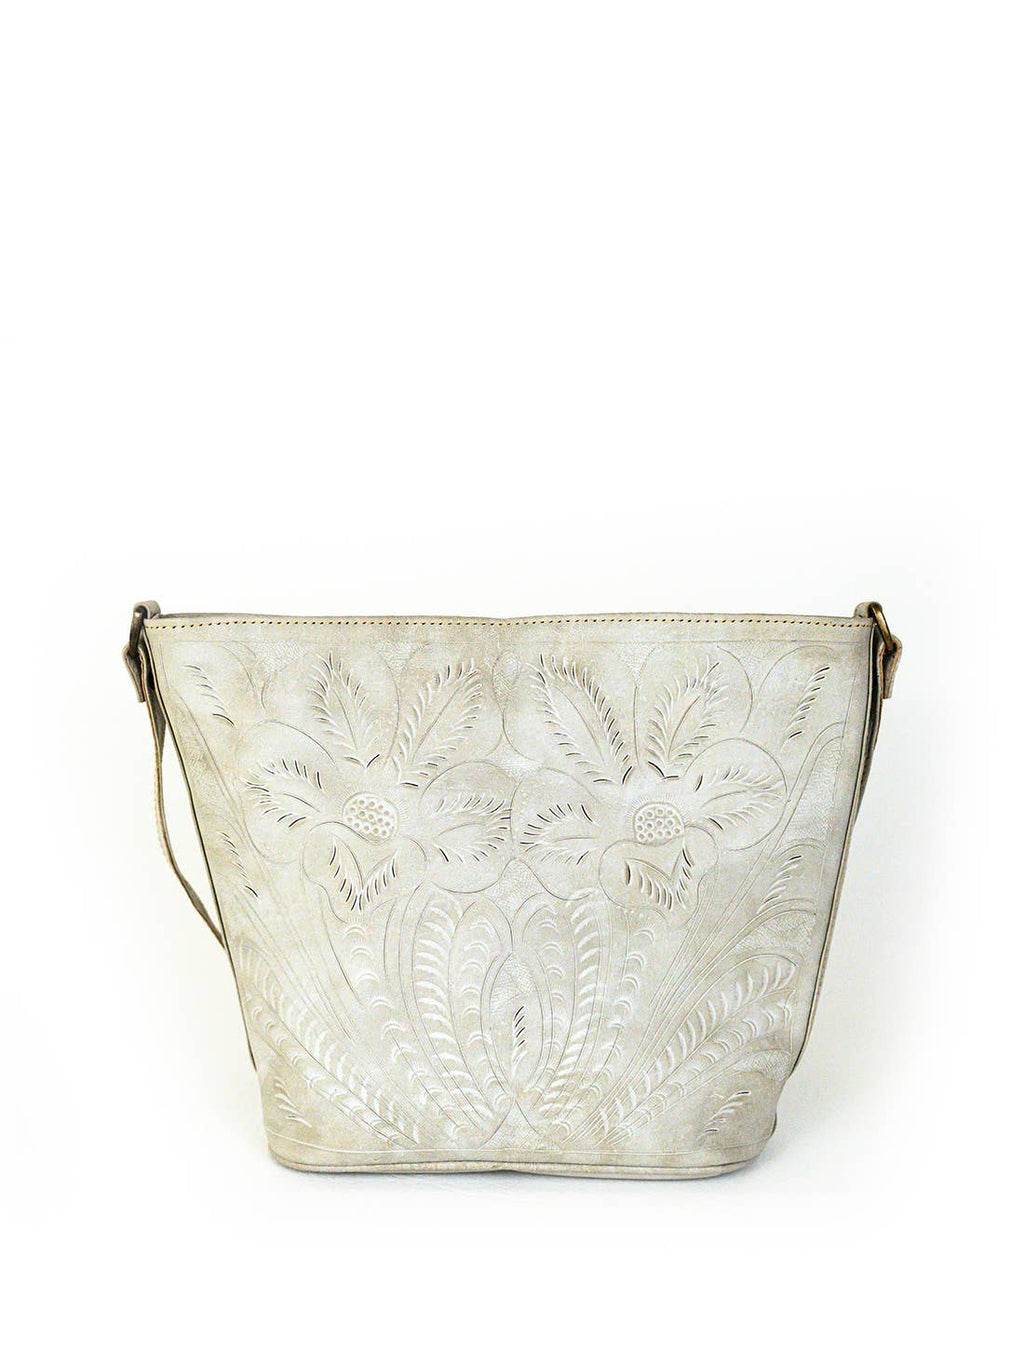 LEADERS IN LEATHER - 0032T Tooled Leather Vintage Bucket Crossbody Bag